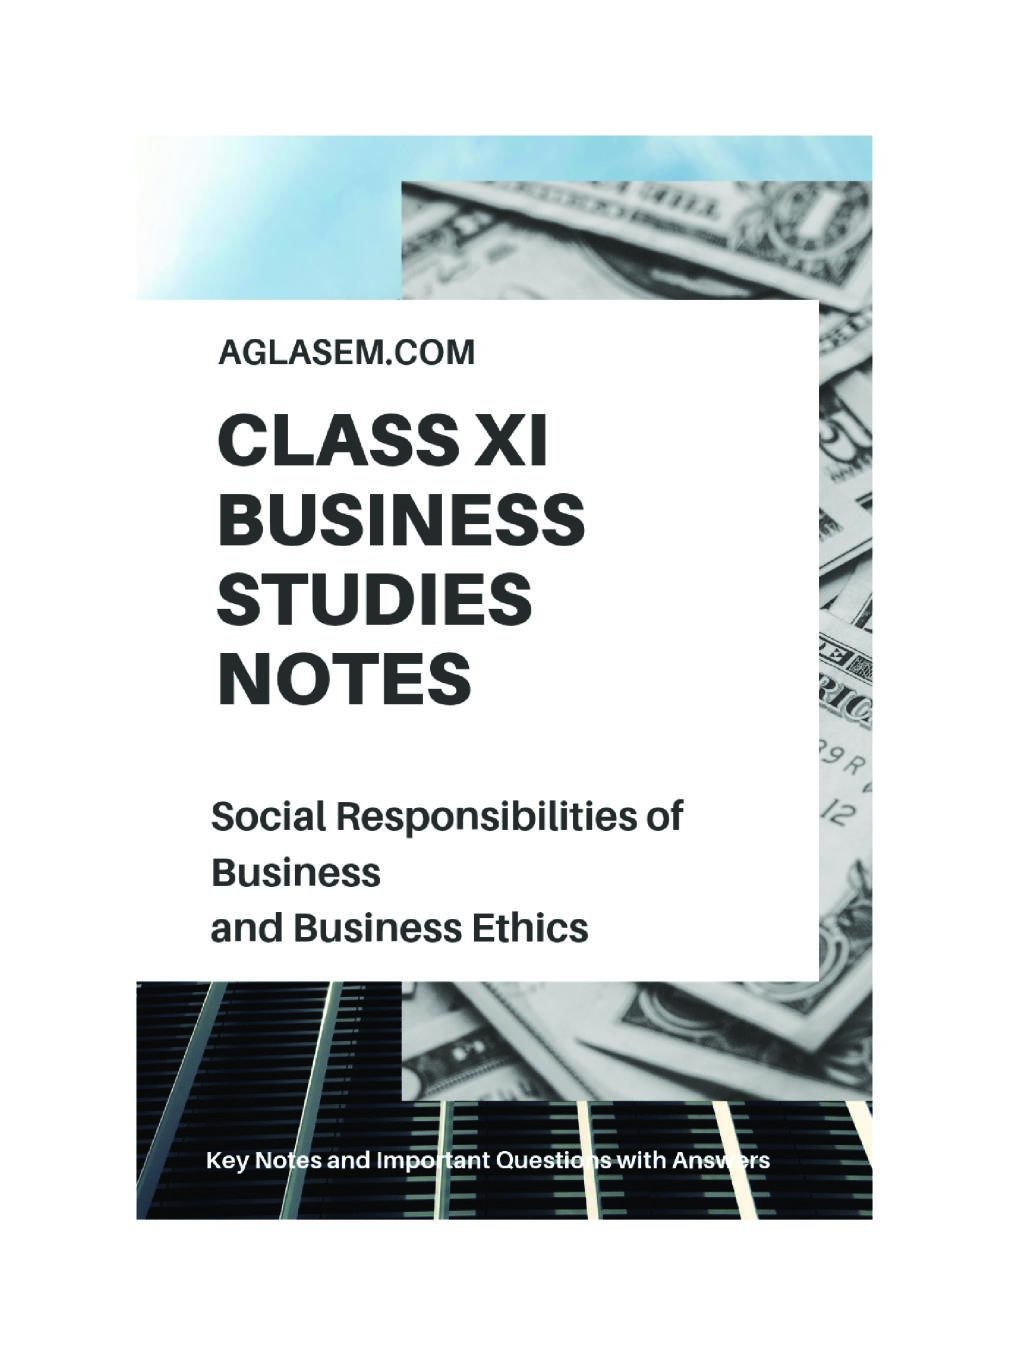 Class 11 Business Studies Notes for Social Responsibilities of Business and Business Ethics